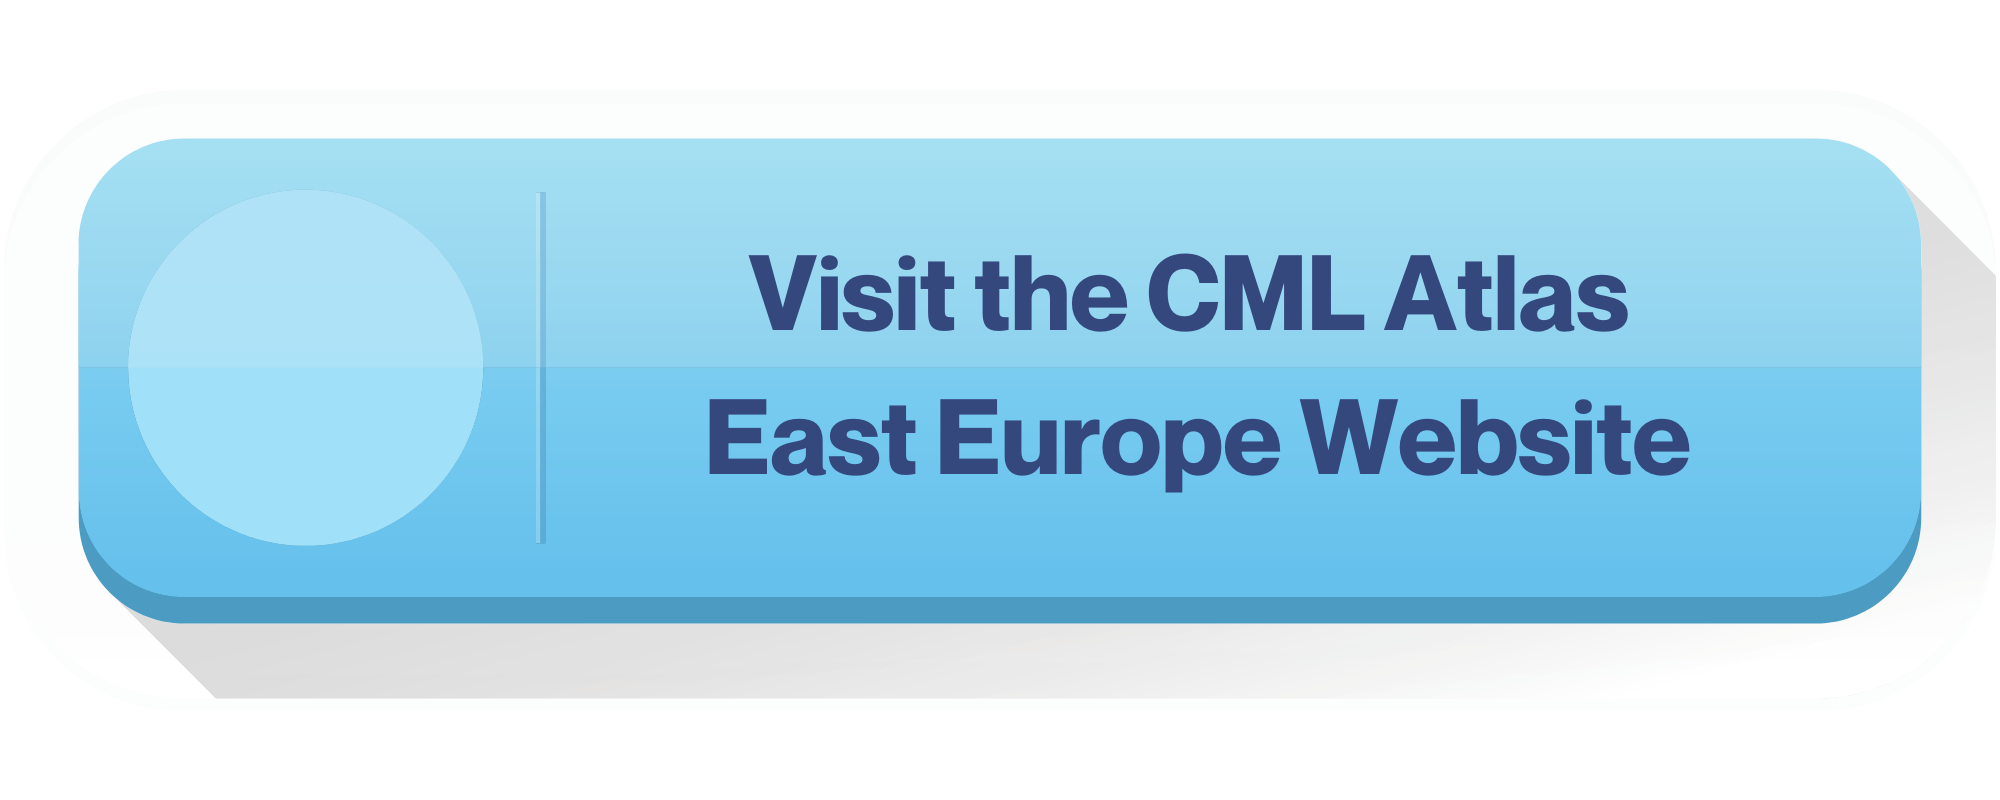 Visit the CML Atlas East Europe Website 3